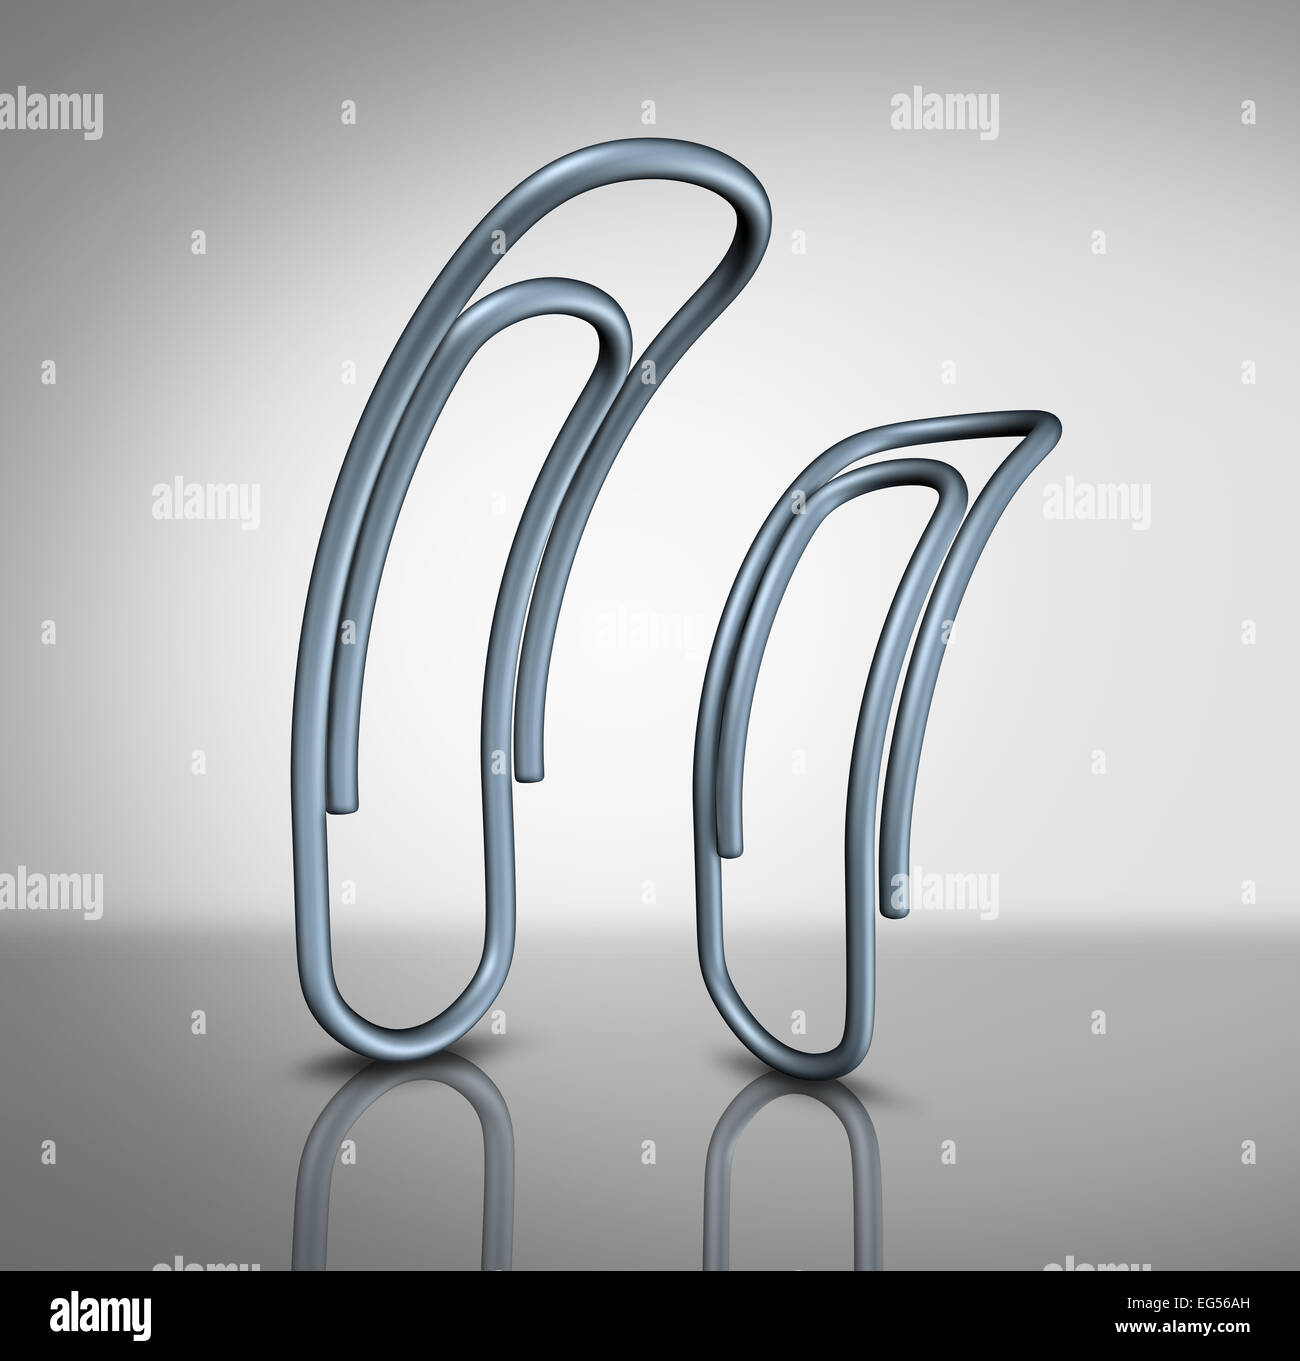 Office bullying and bullies in the workplace concept as two paperclips with one intimidating another as a corporate - Stock Image